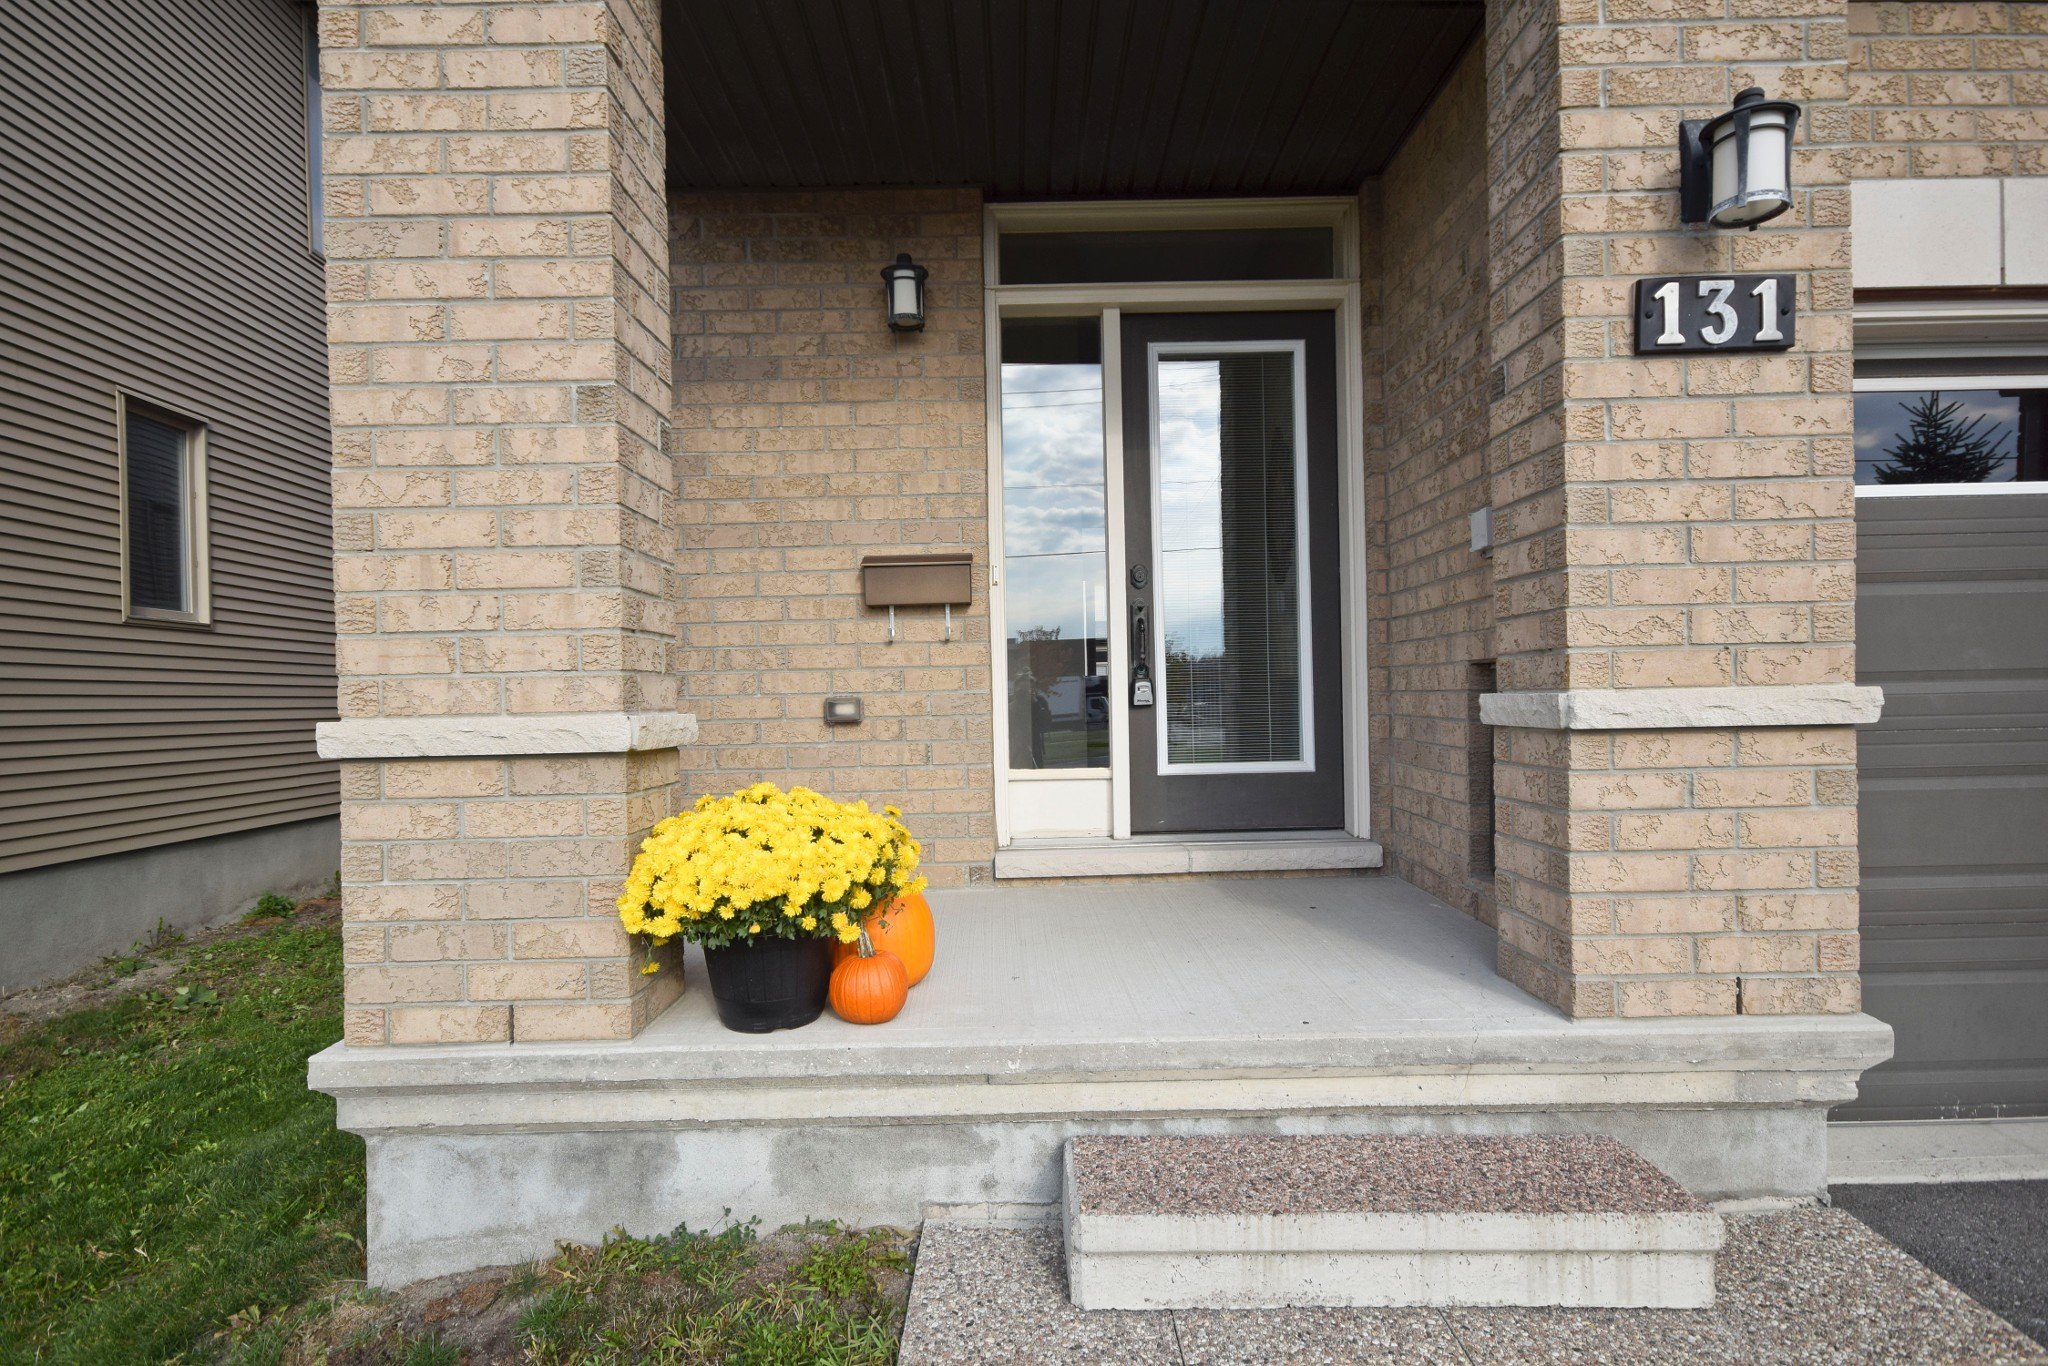 Photo 6: Photos: 131 Popplewell Crescent in Ottawa: Cedargrove / Fraserdale House for sale (Barrhaven)  : MLS®# 1130335